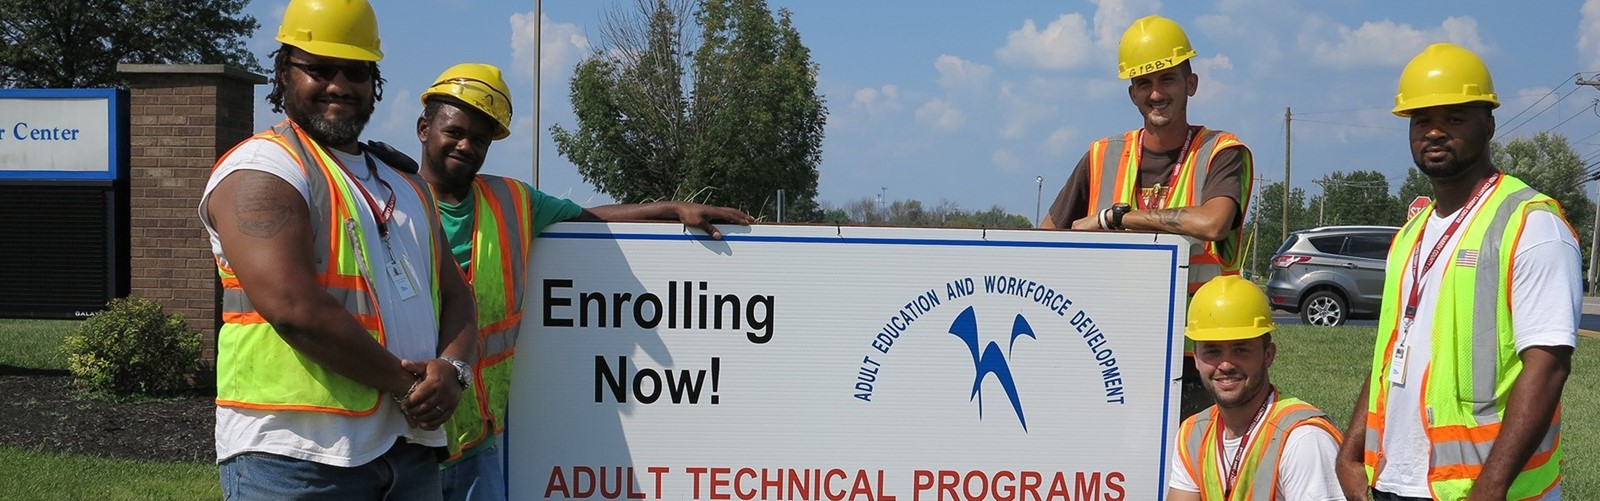 Now enrolling for Adult Technical Programs